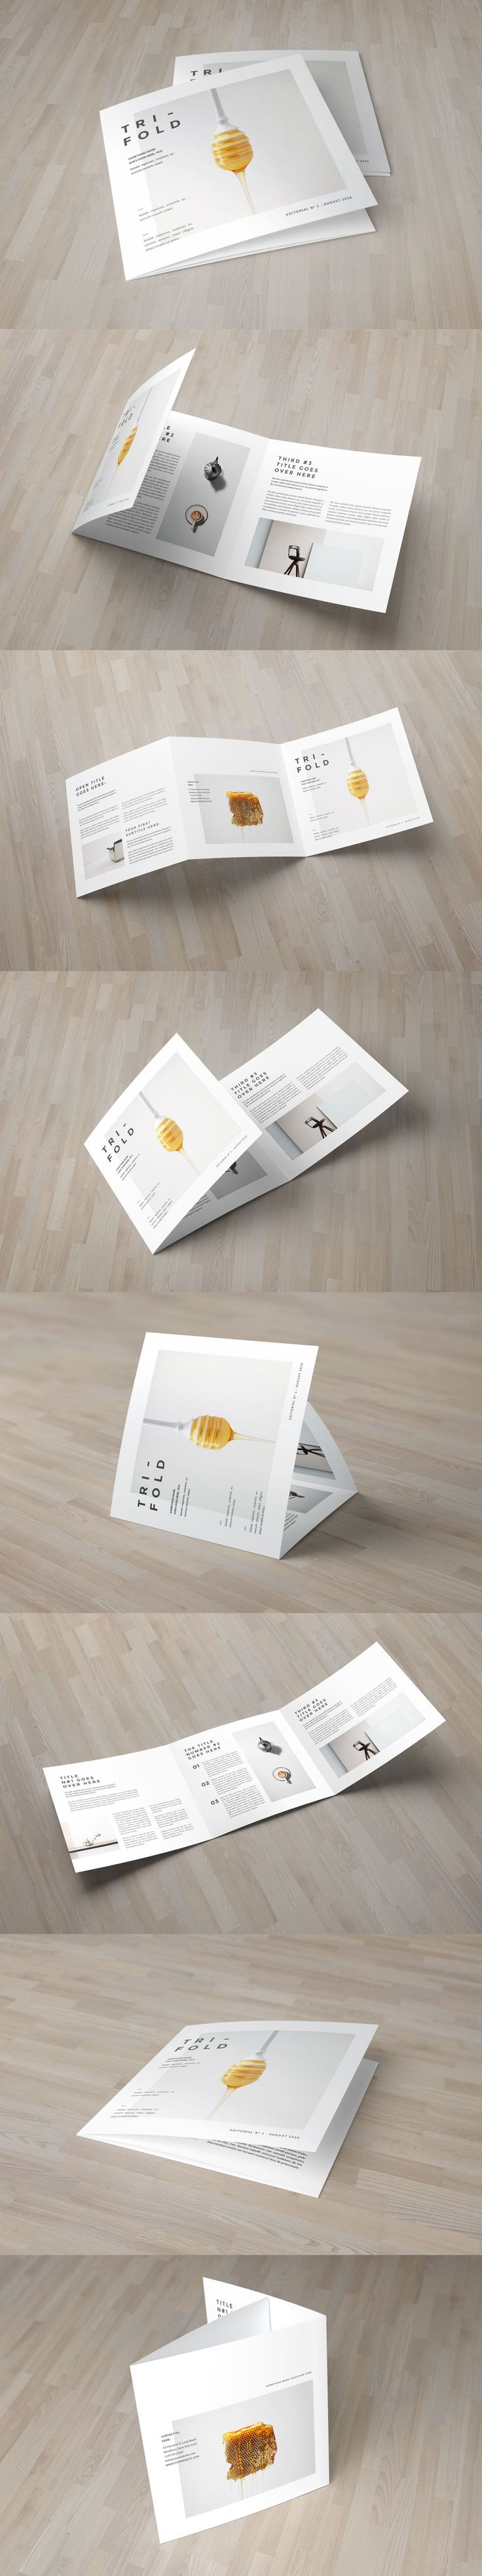 Square Minimal Cool White Trifold Brochure Template InDesign INDD